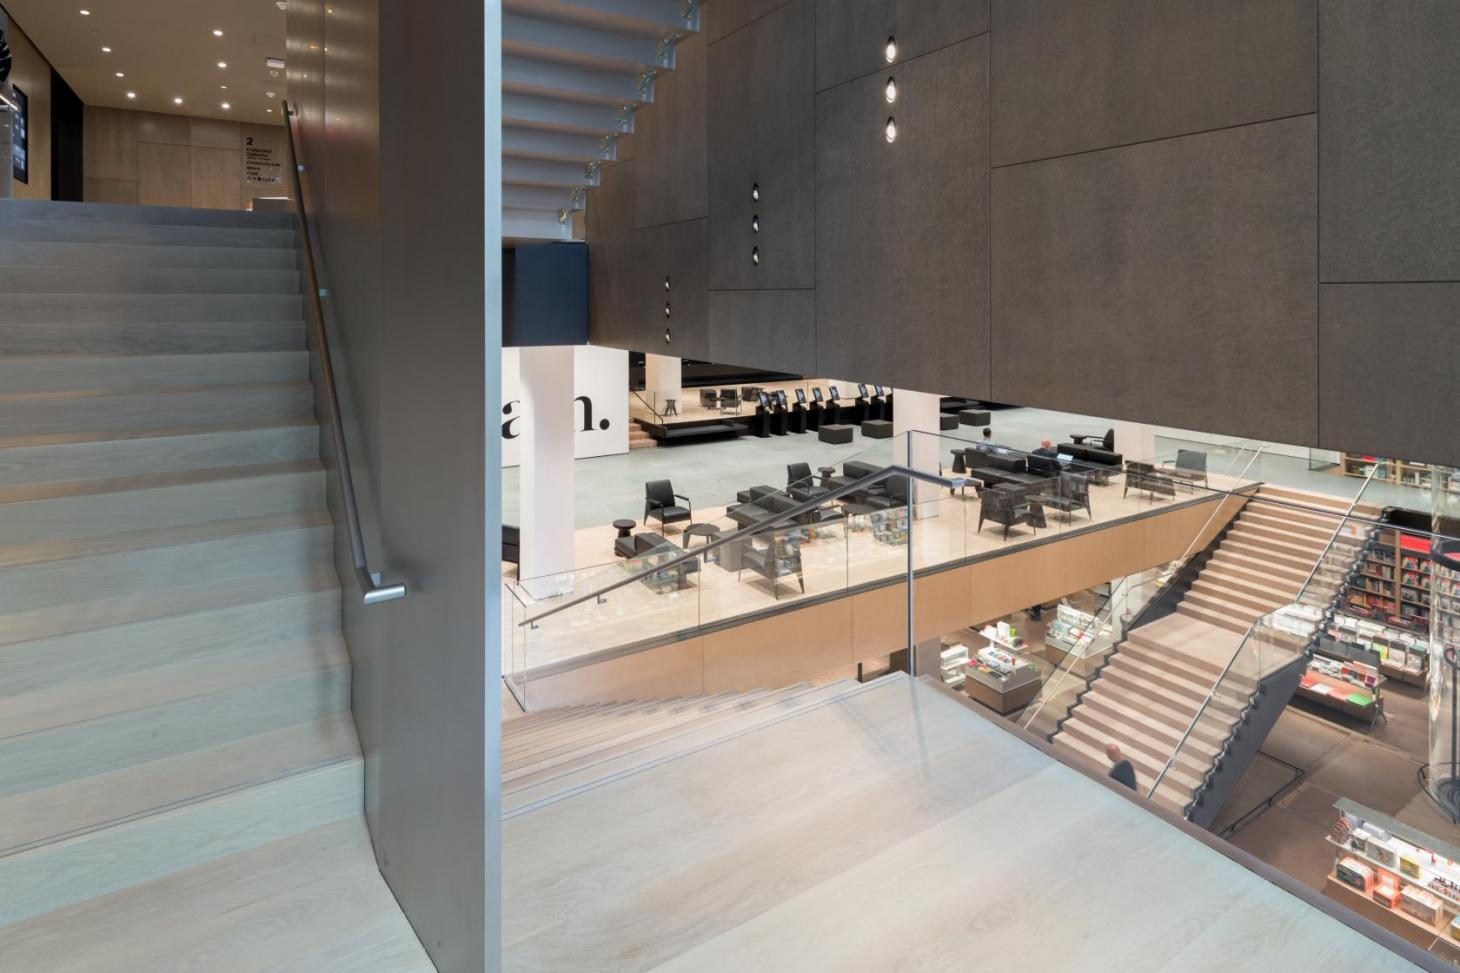 Inside the new MoMA by DS+R in 2019